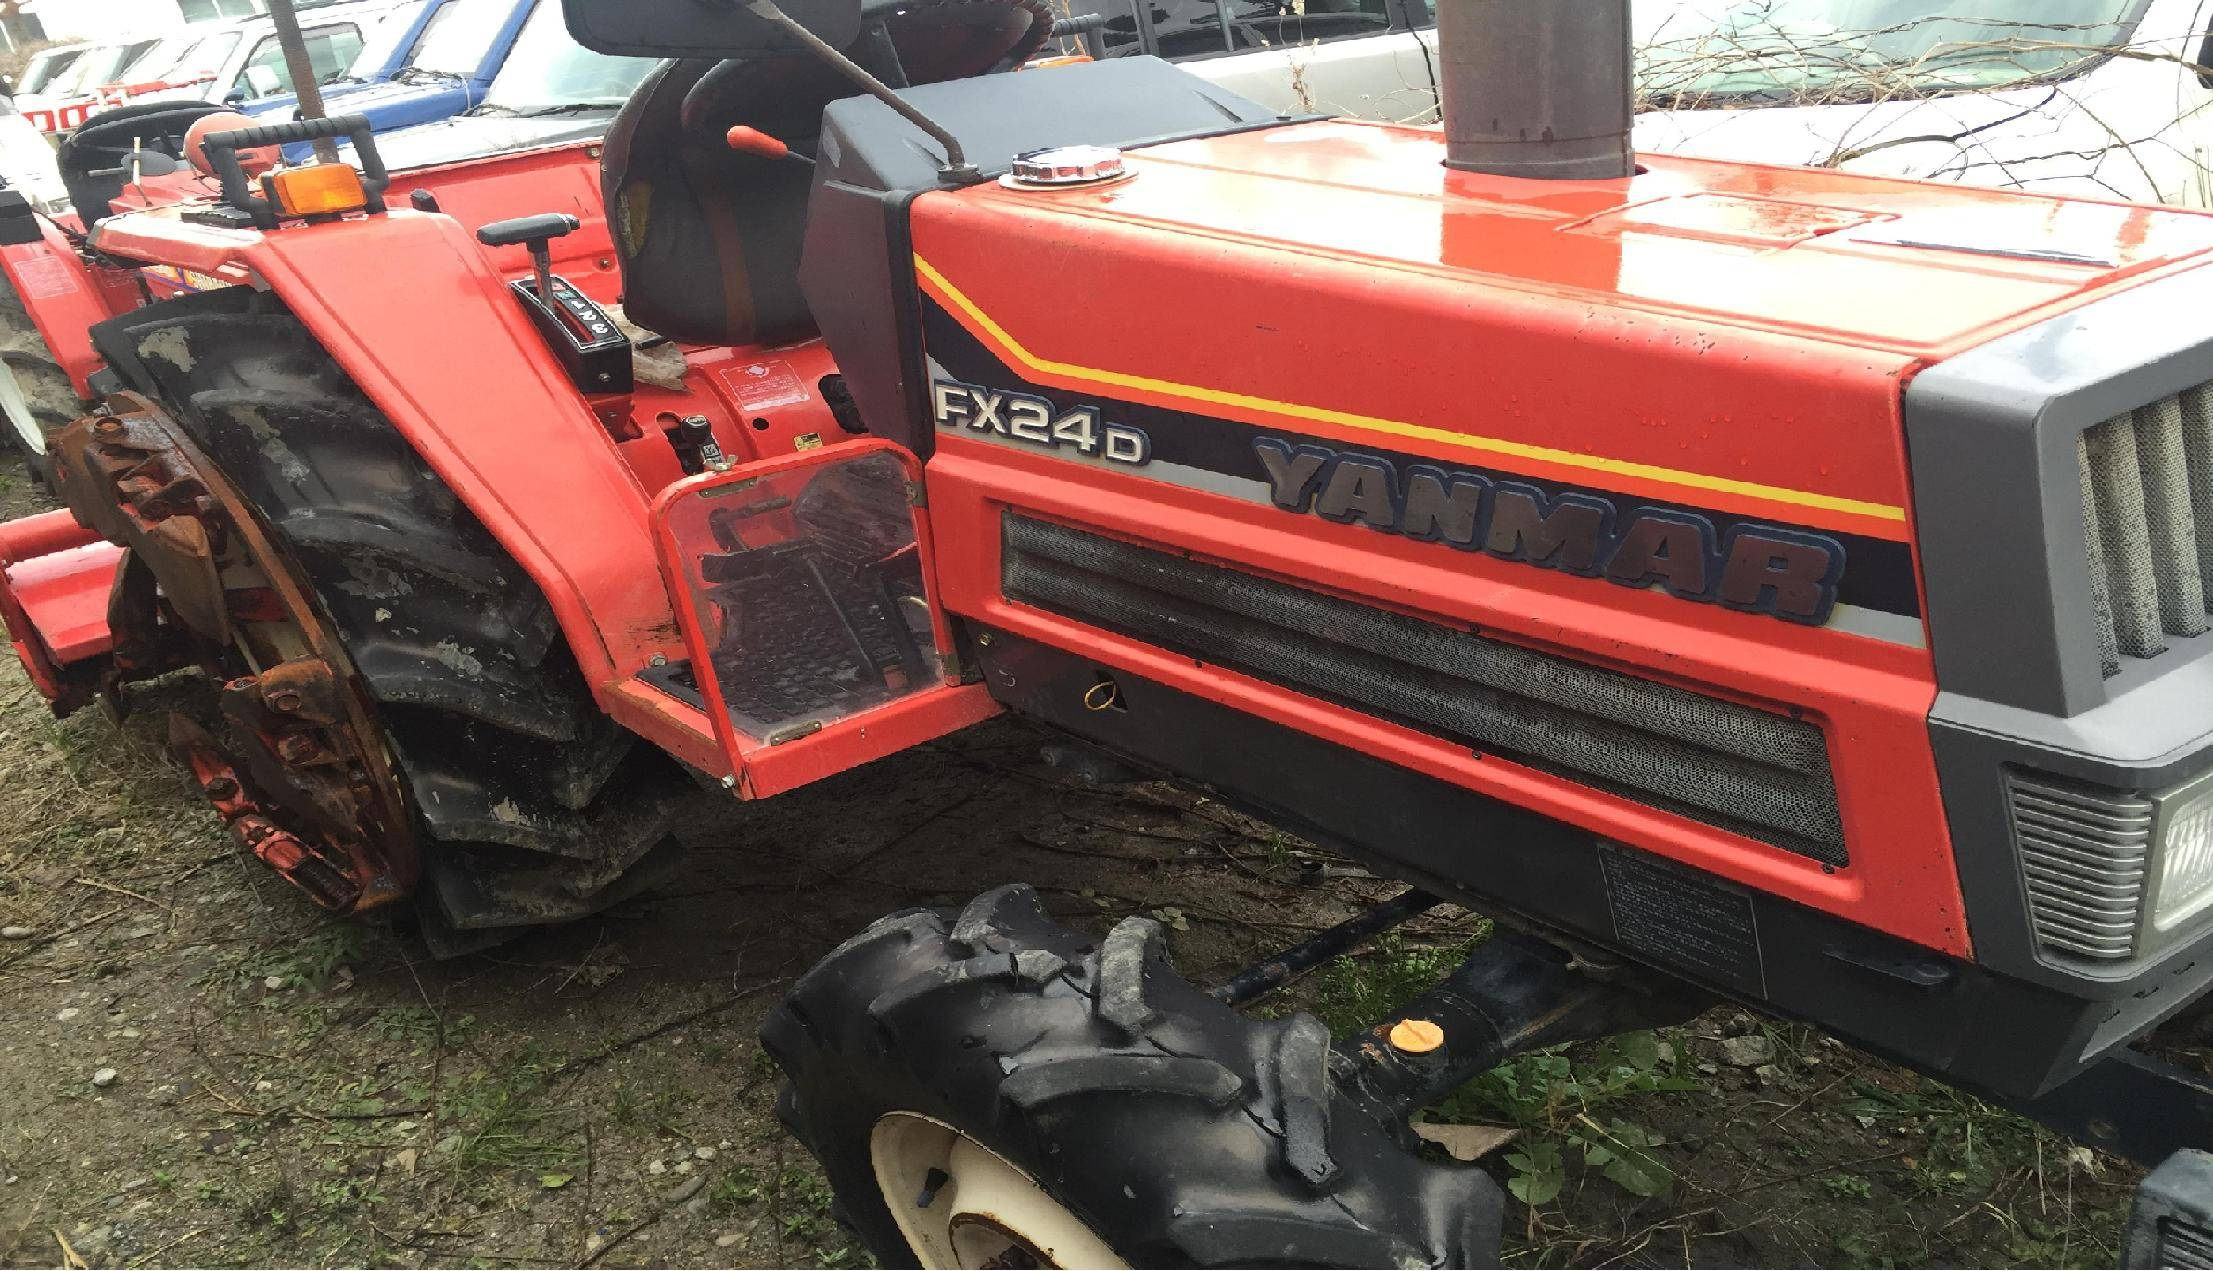 Used Tractor Yanmar FX24D